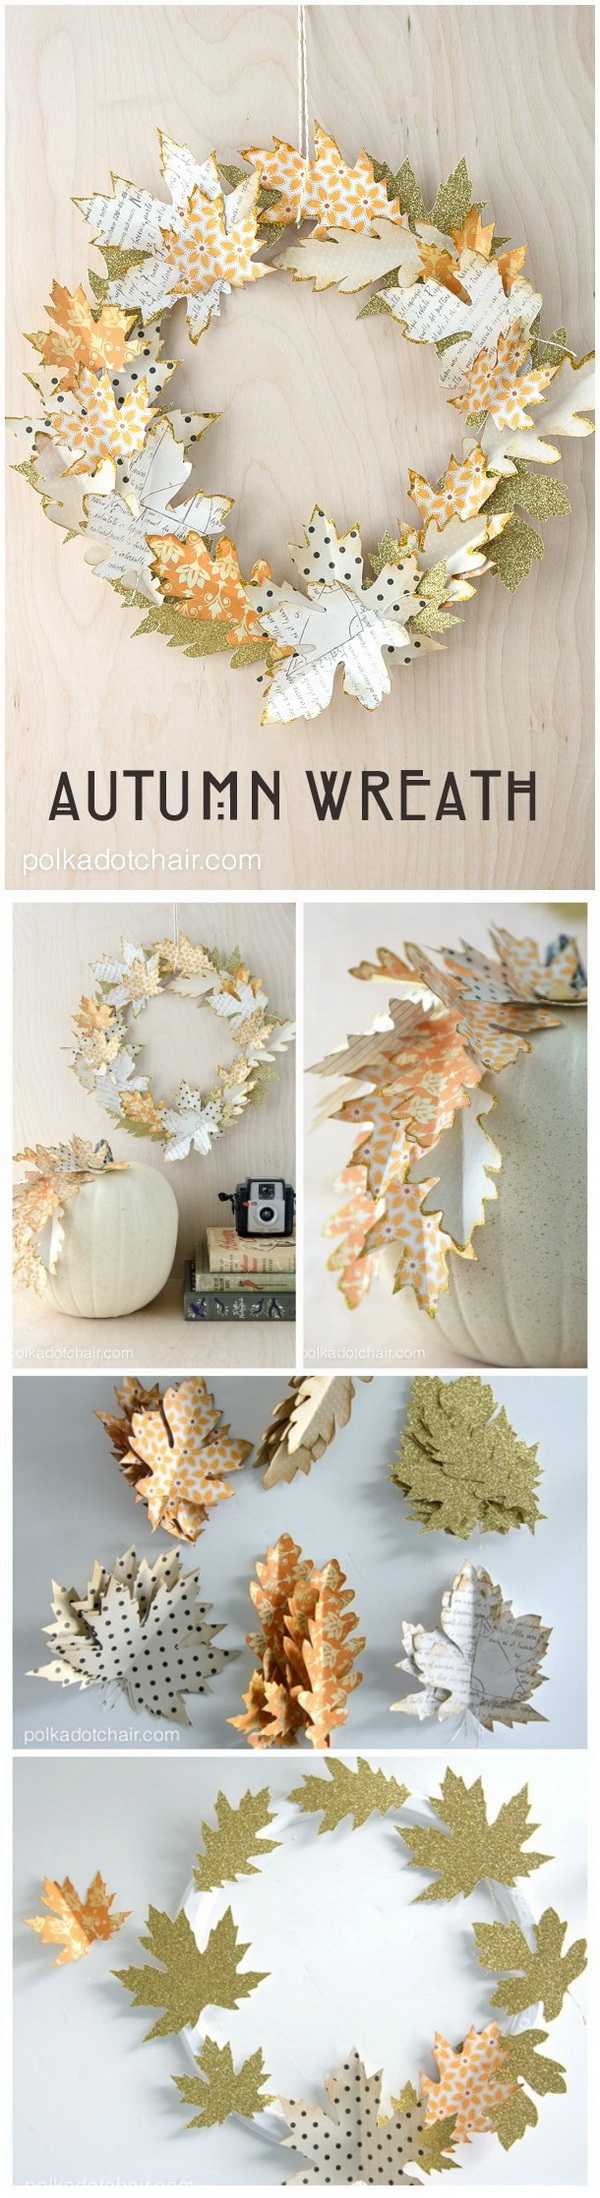 Autumn Paper Leaf Wreath. Add some fall DIY decor to your home with this paper wreath! Elegant and  simple decorating ideas for Thanksgiving.